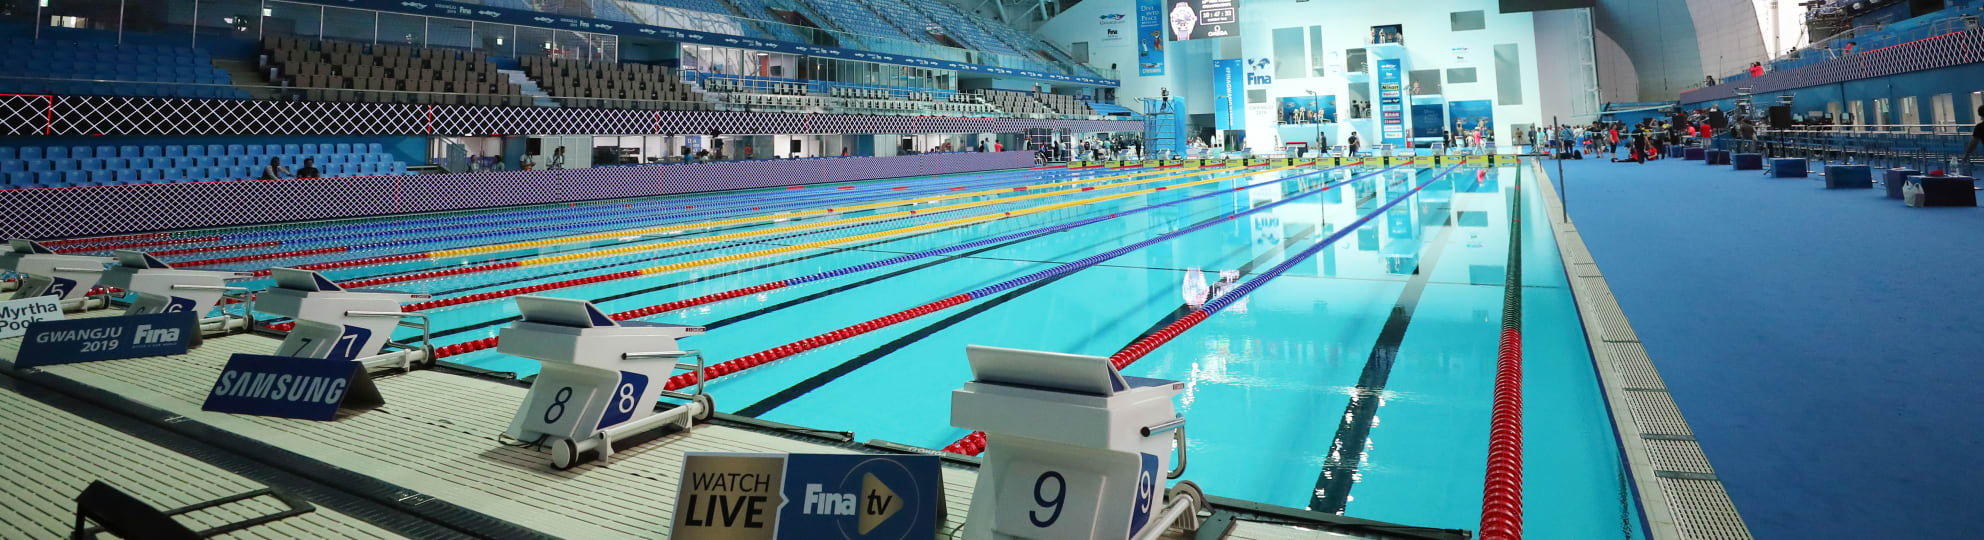 The ultimate guide to the FINA World Championships in